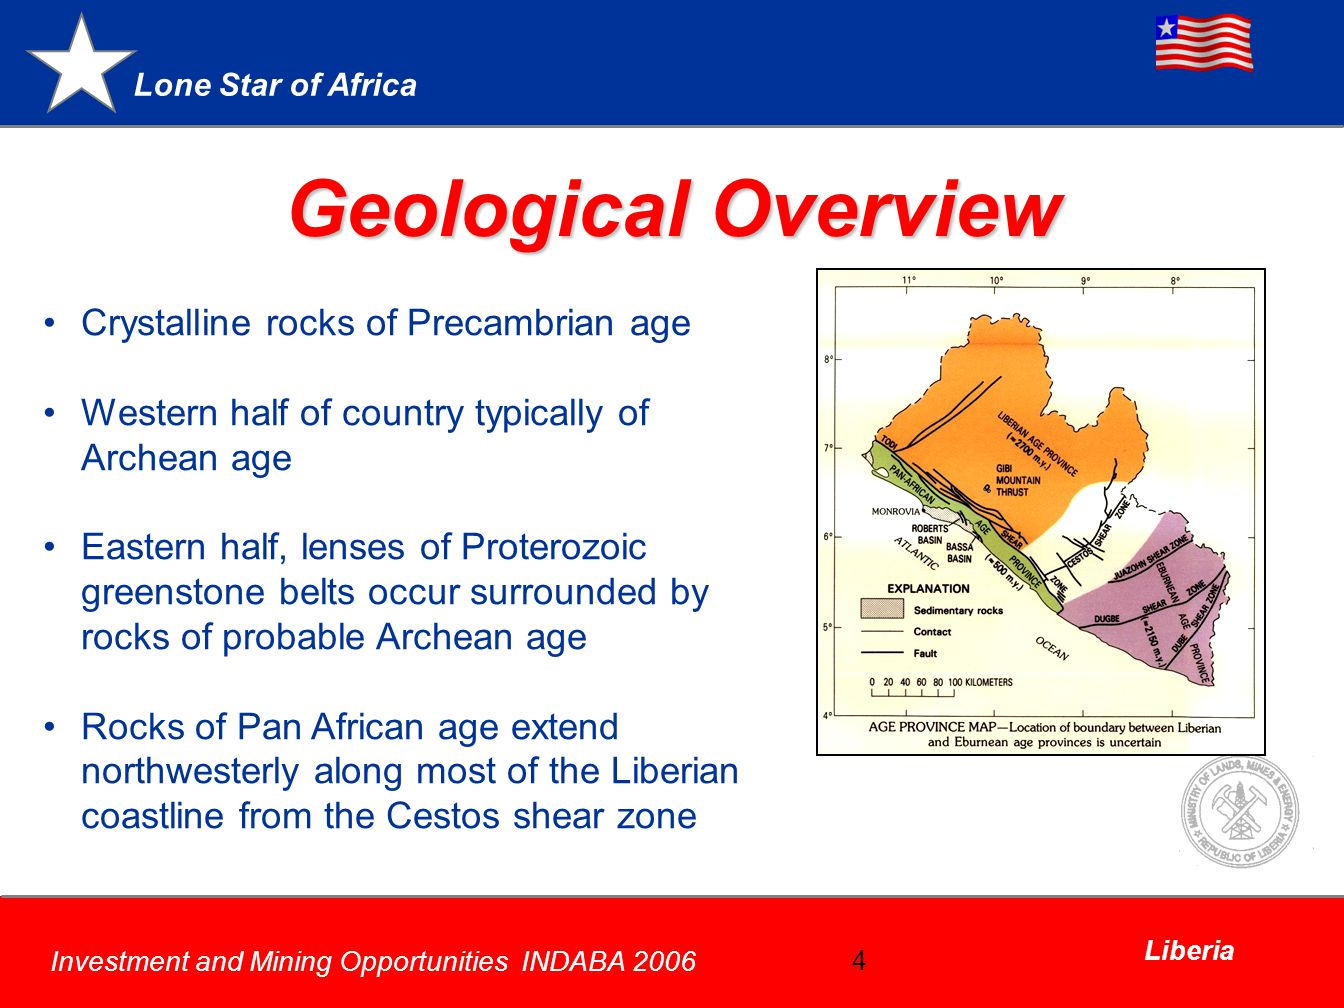 Lone Star of Africa Investment and Mining Opportunities INDABA 2006 Liberia 4 Geological Overview Crystalline rocks of Precambrian age Western half of country typically of Archean age Eastern half, lenses of Proterozoic greenstone belts occur surrounded by rocks of probable Archean age Rocks of Pan African age extend northwesterly along most of the Liberian coastline from the Cestos shear zone